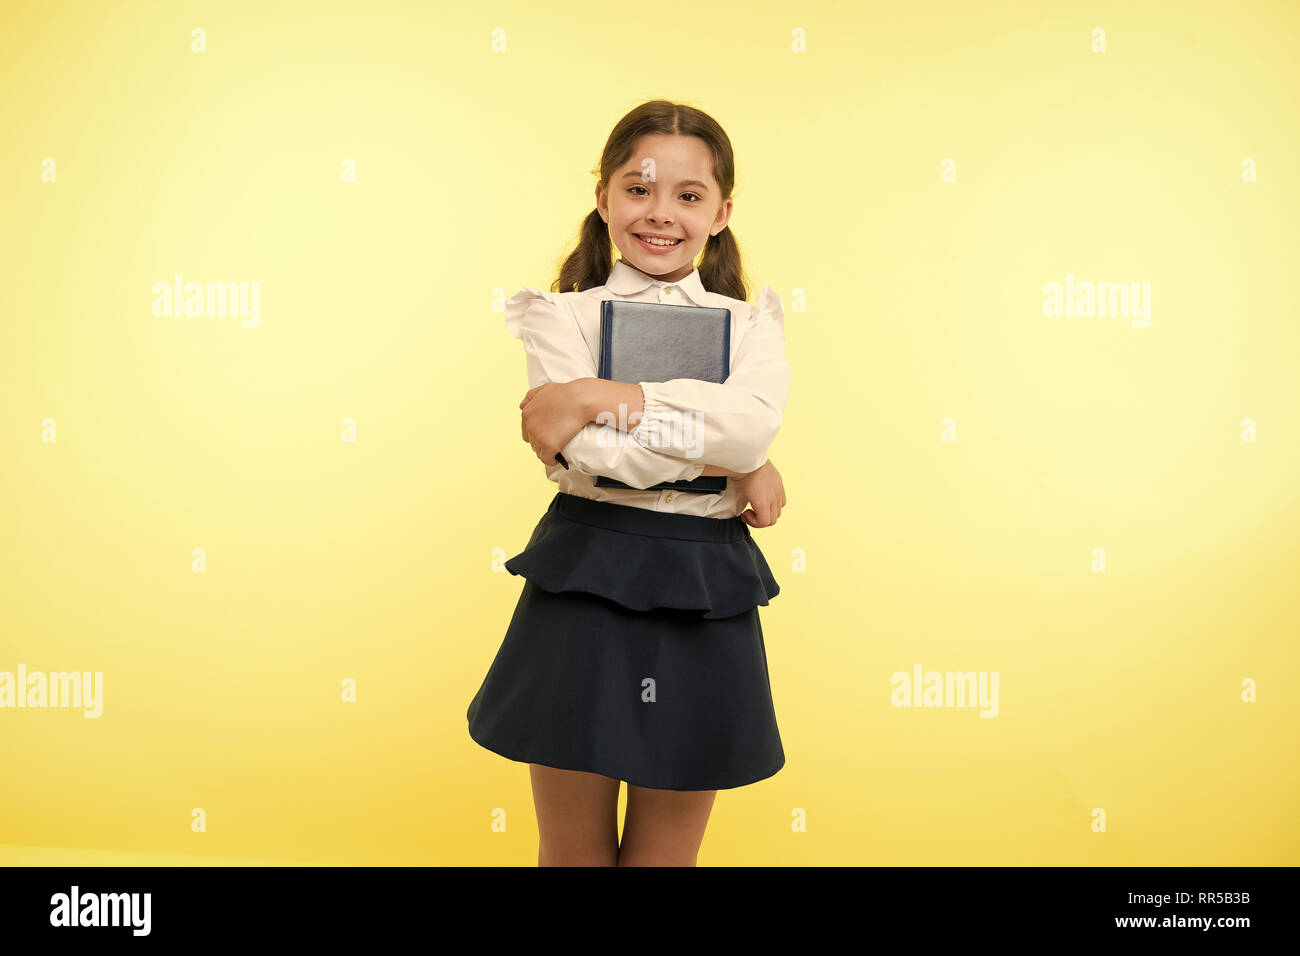 Happy girl hold book on yellow background. Little schoolgirl smile with textbook. Fashion bookworm. First school day. Learning is my game. Stock Photo